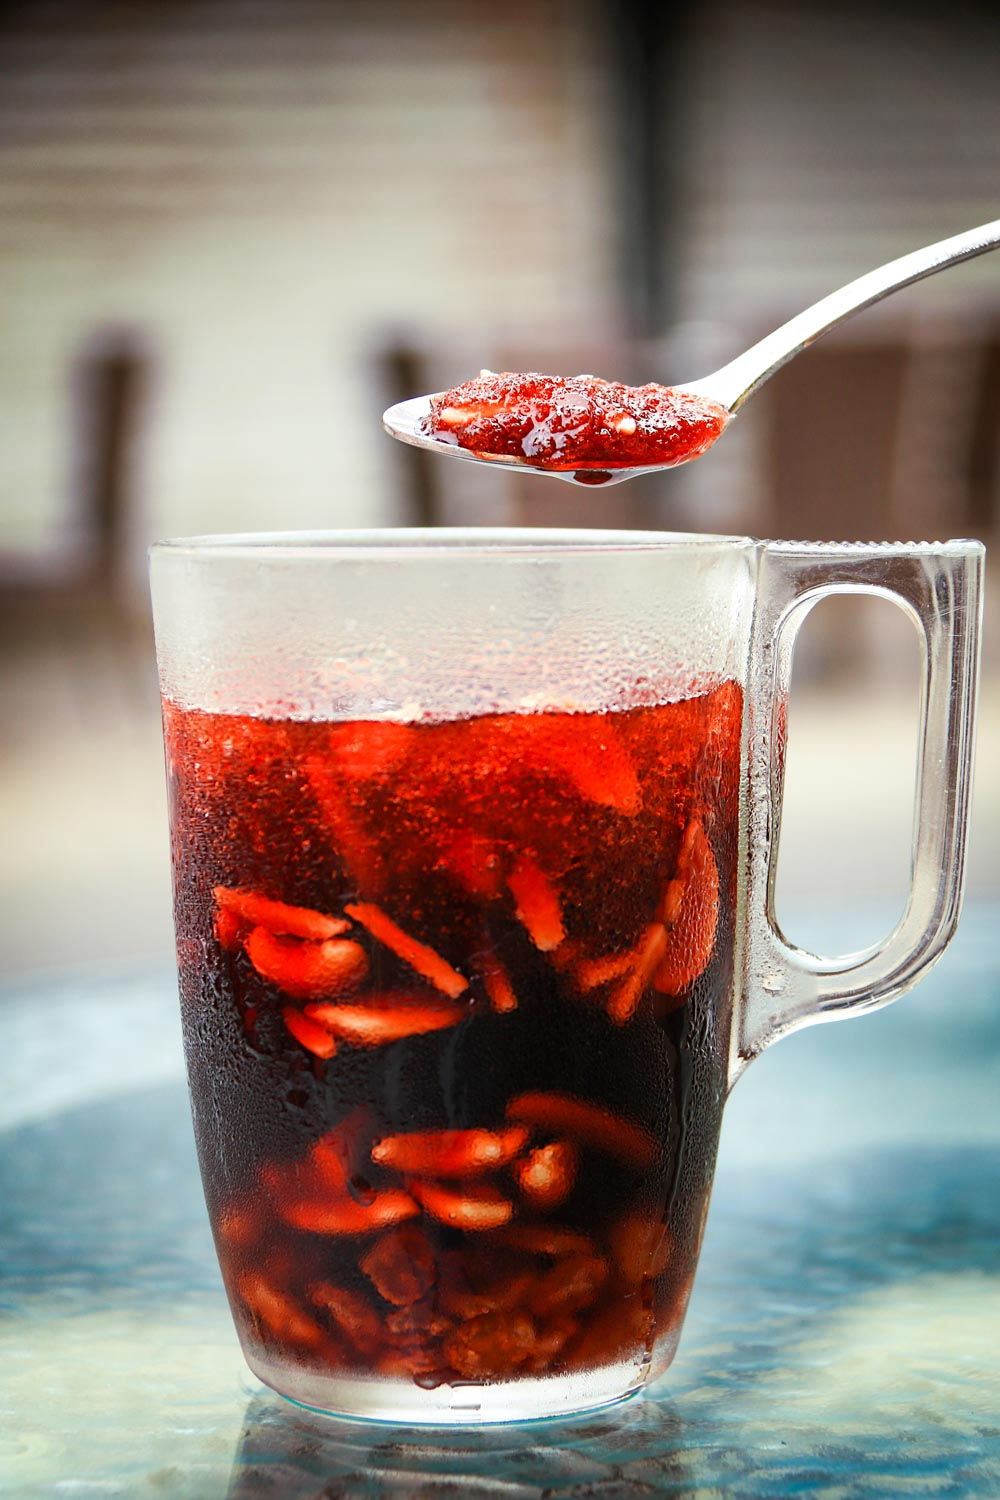 A spoon above a jallab tall glass. Jallab is a refreshing summer drink, popular during Ramadan. It's made of grape, carob molasses, dates, and rose water. It is diluted in water with crushed ice, nuts, and raisins.